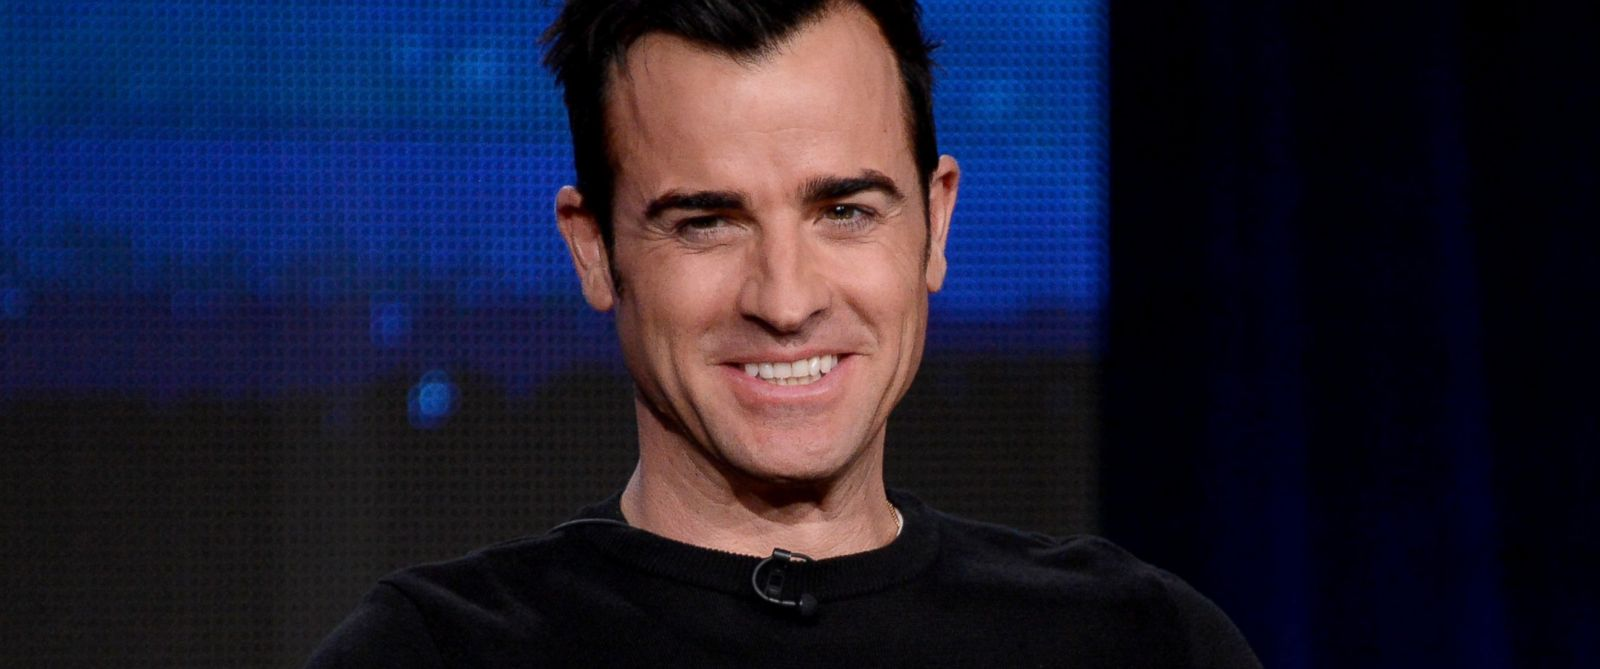 """PHOTO: Justin Theroux speaks onstage at the """"The Leftovers"""" panel at the The Langham Huntington Hotel and Spa in Pasadena, Calif., Jan. 9, 2014."""